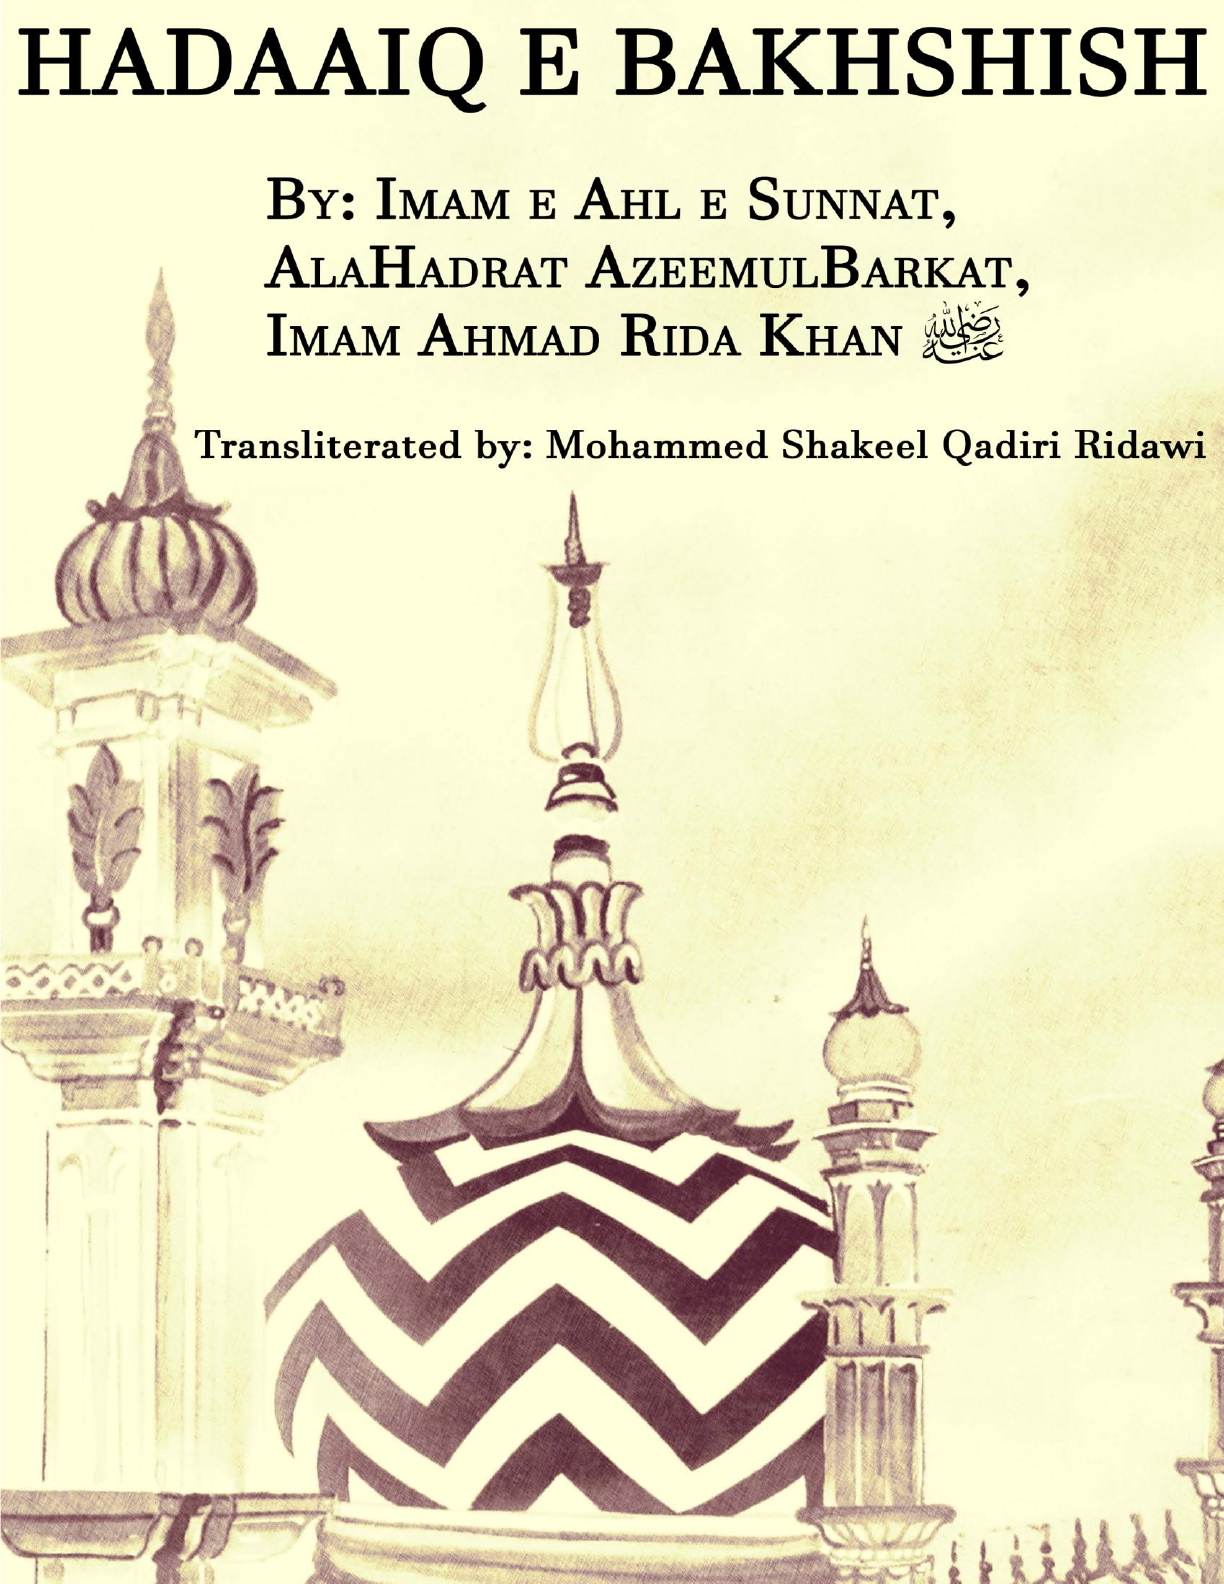 before you a transliteration of Hadaiq-e-Bakhshish of Imam